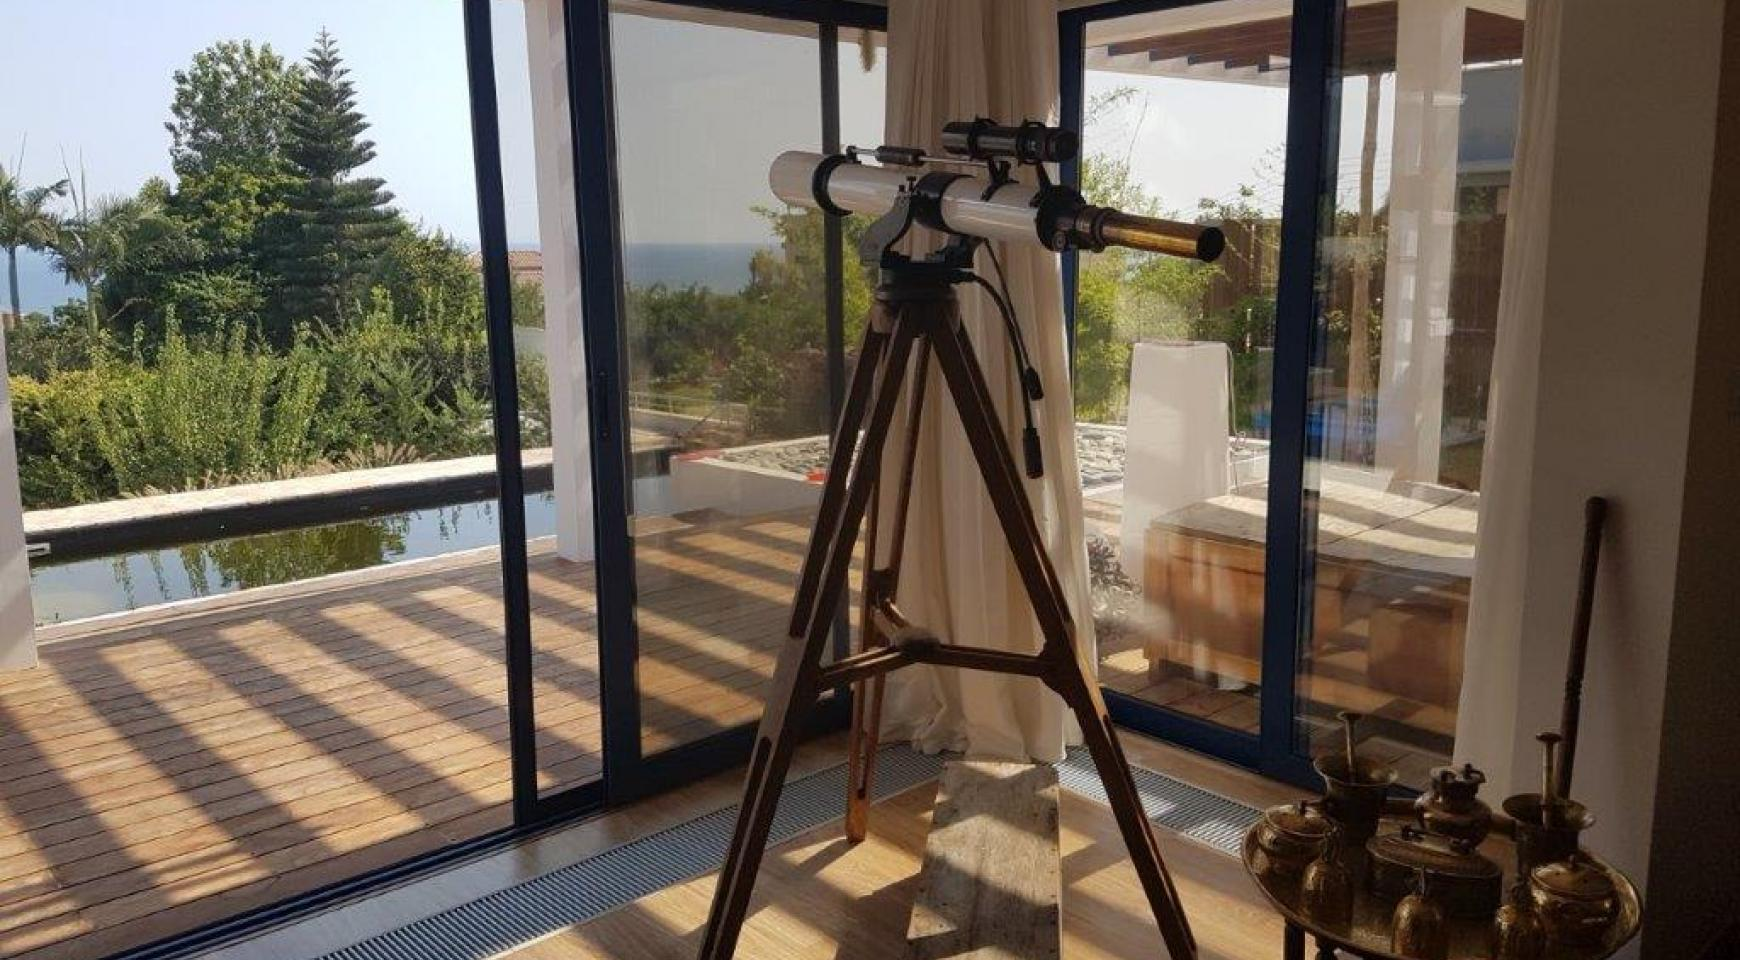 5 Bedroom Villa with Sea Views in Agios Tychonas Area - 13